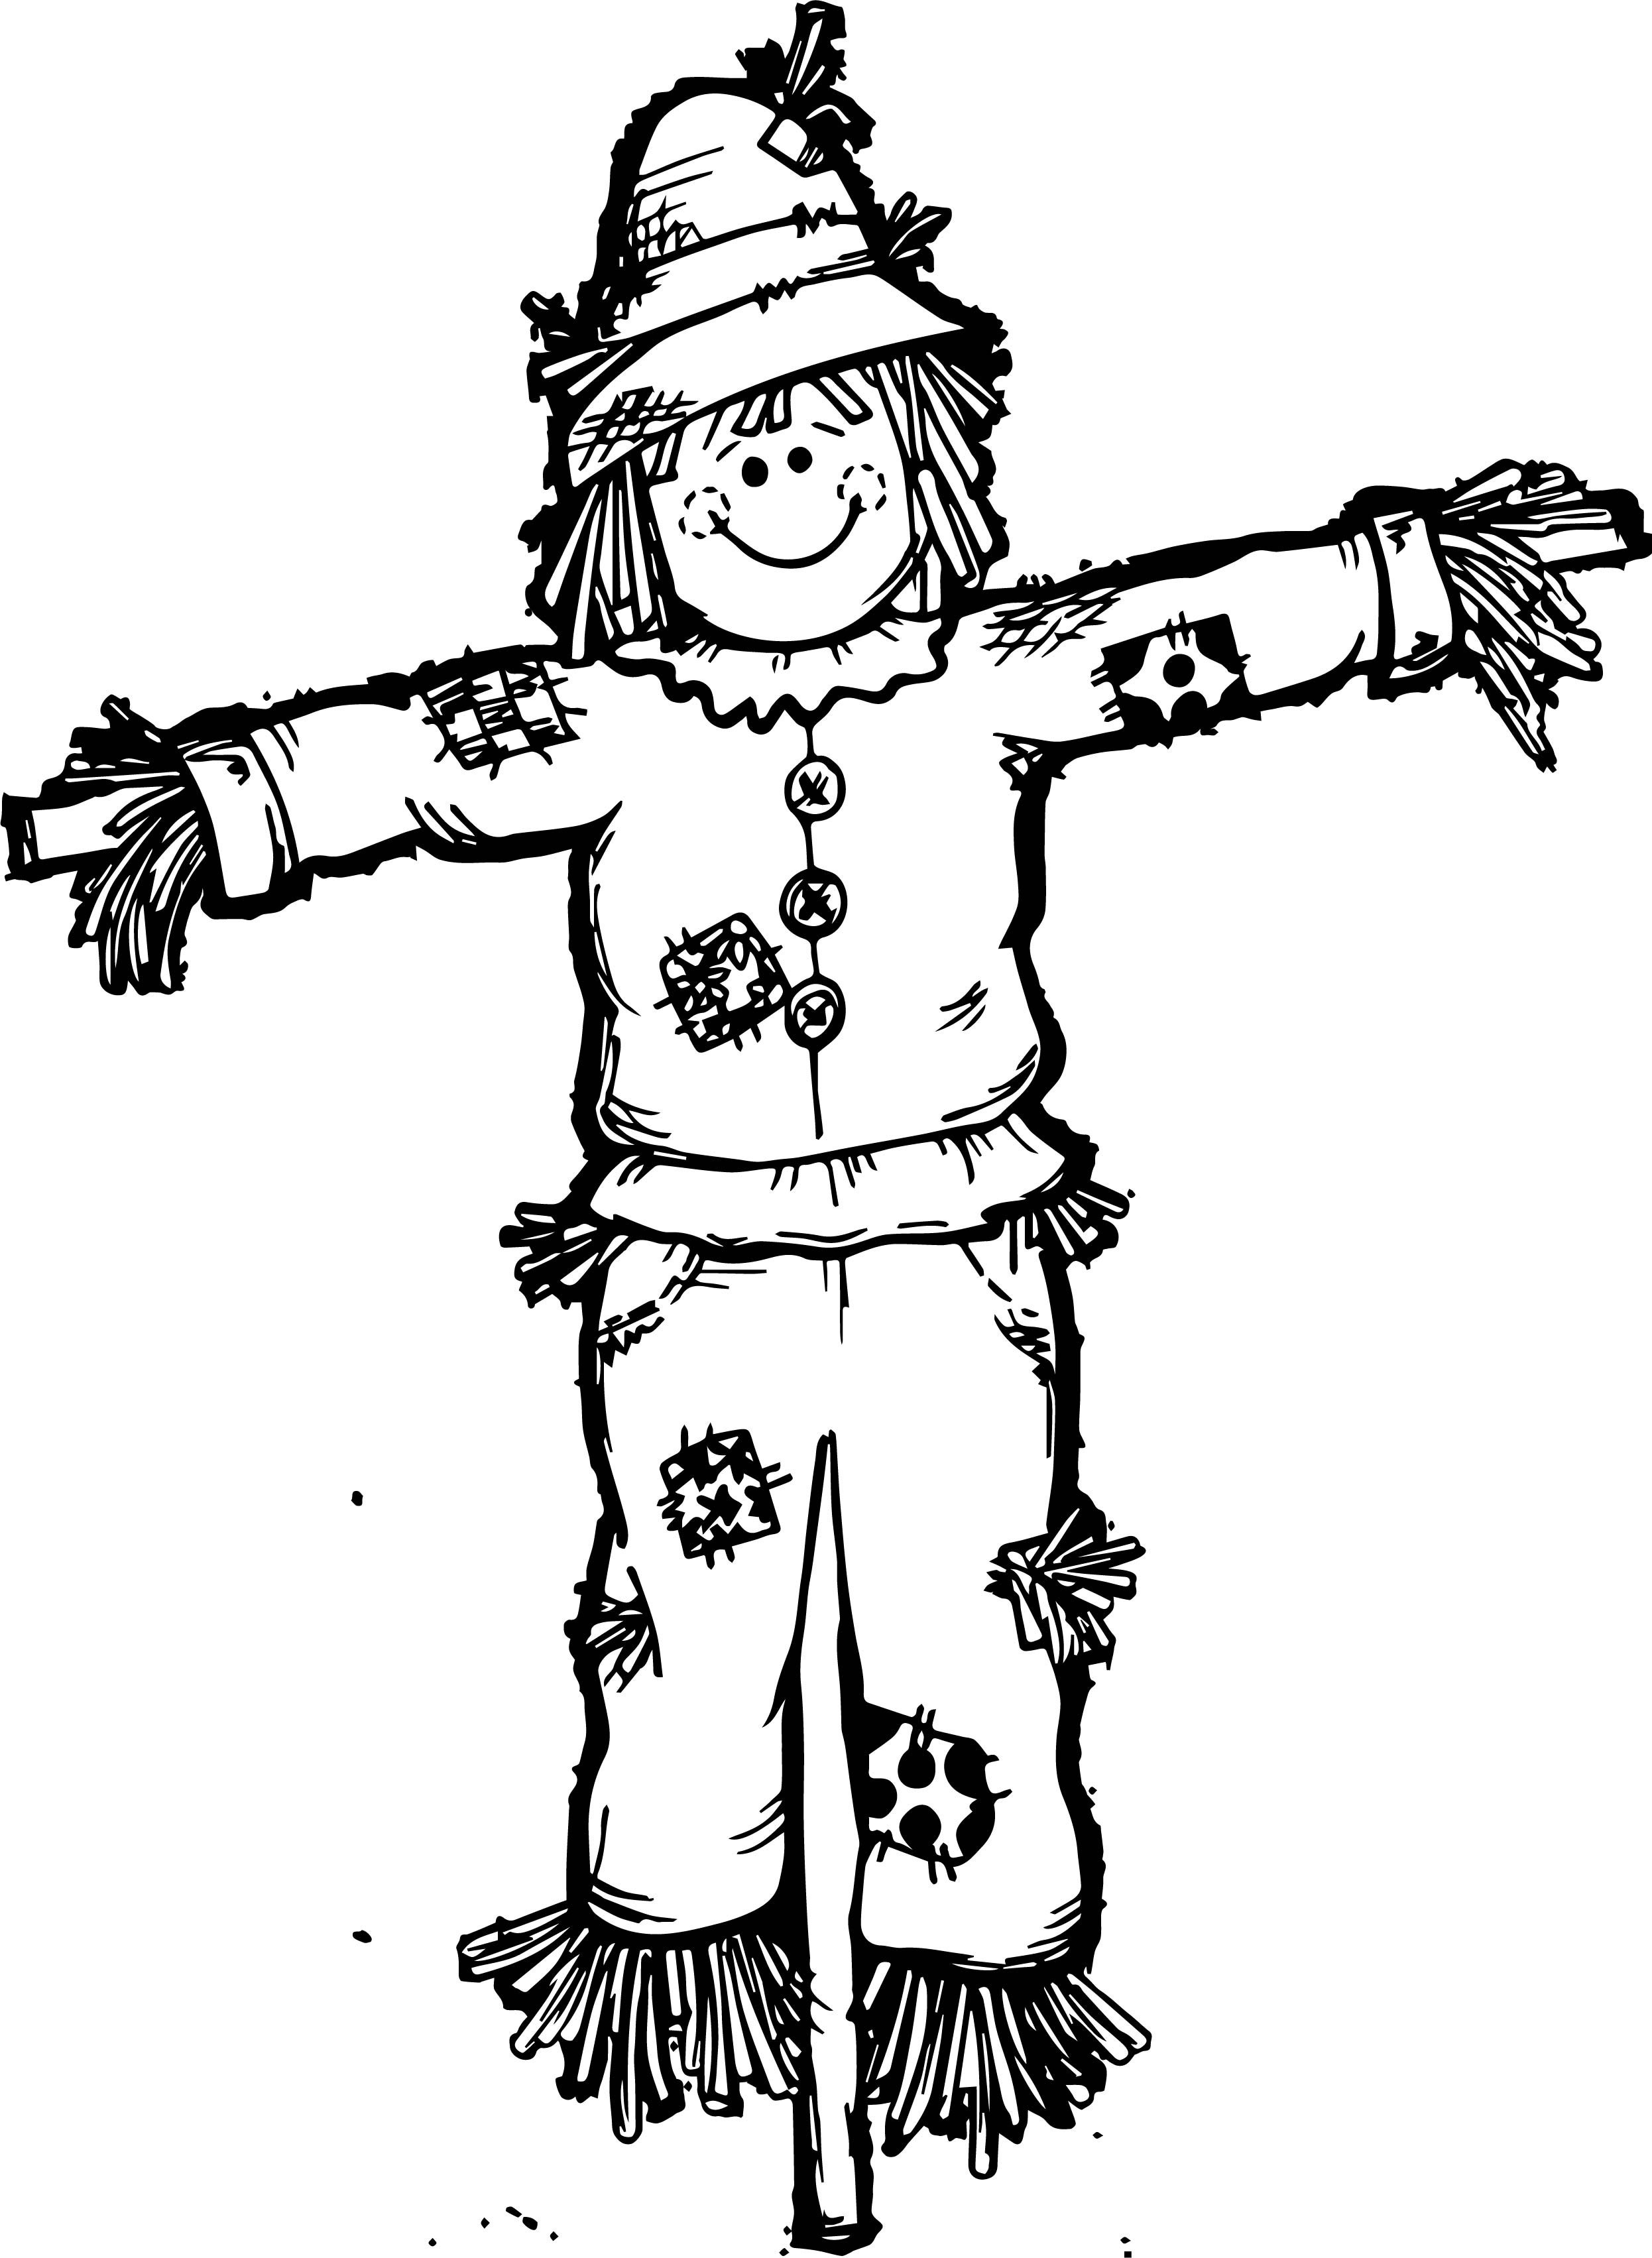 Scary Scarecrow Coloring Pages At Getcolorings